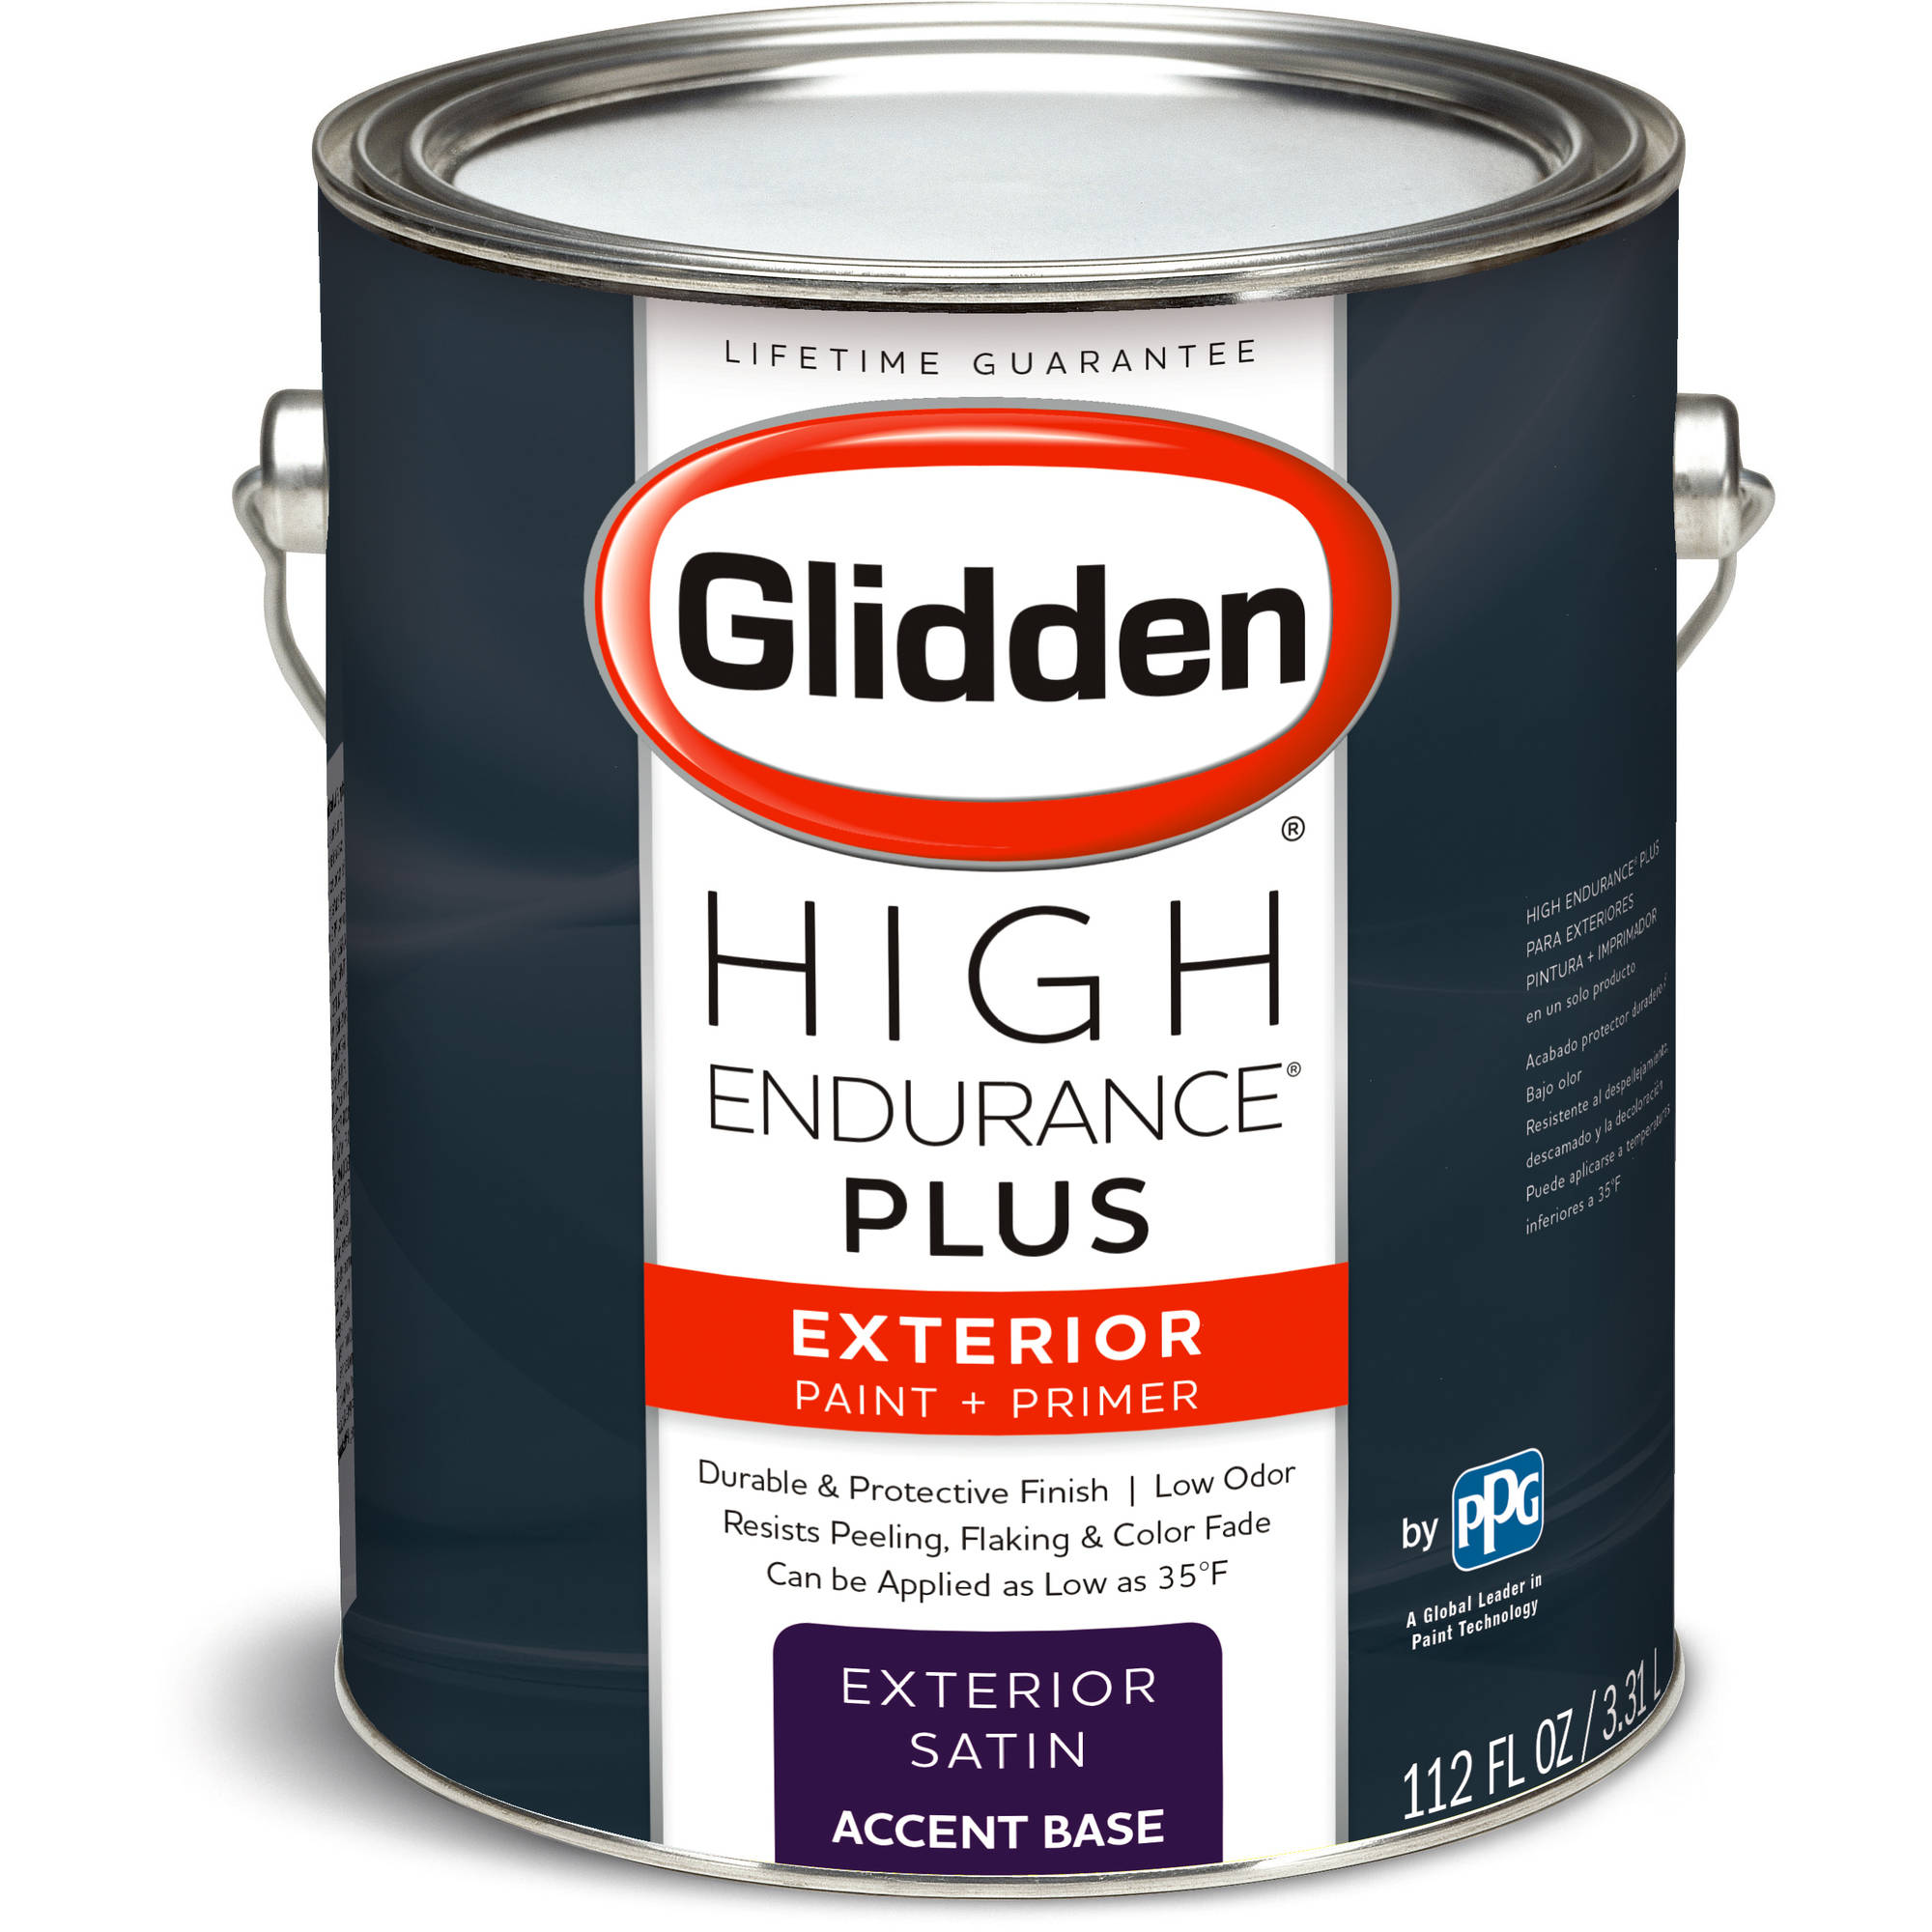 Glidden High Endurance Plus, Exterior Paint and Primer, Satin Finish, Accent Base, 1 Gallon